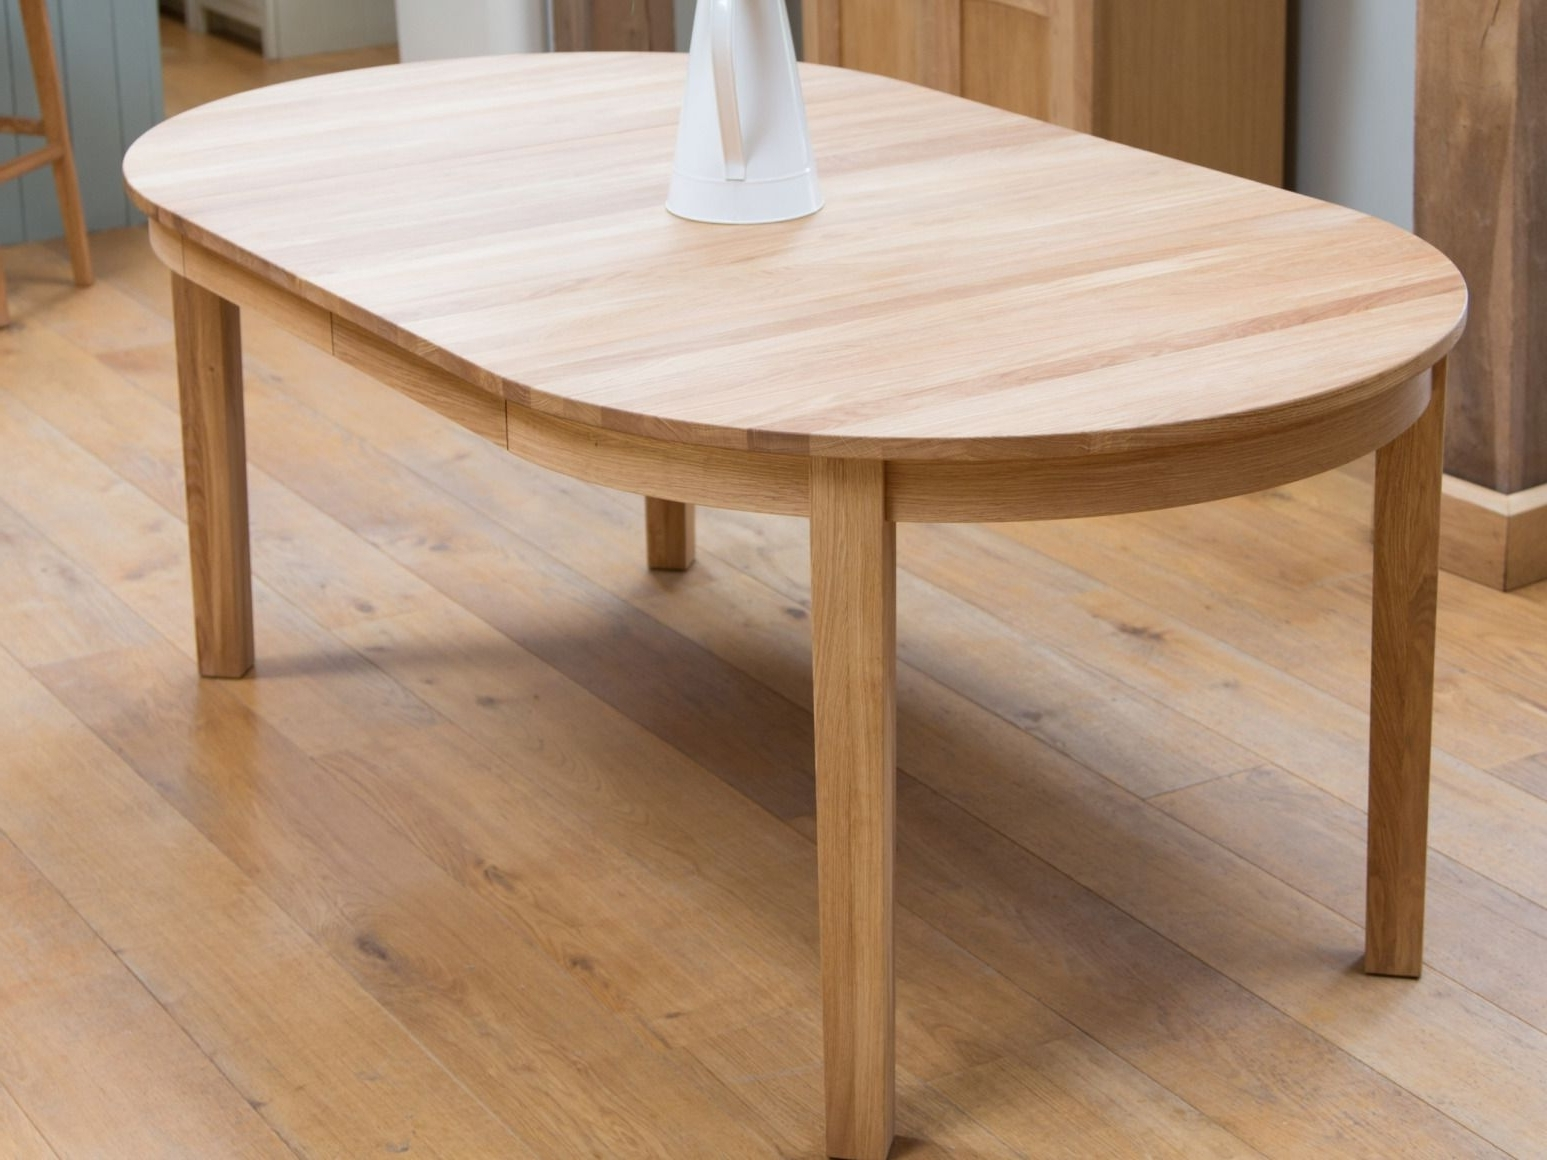 100+ Round Dining Table Extends To Oval – Best Way To Paint Throughout Most Current Round Dining Tables Extends To Oval (View 11 of 25)